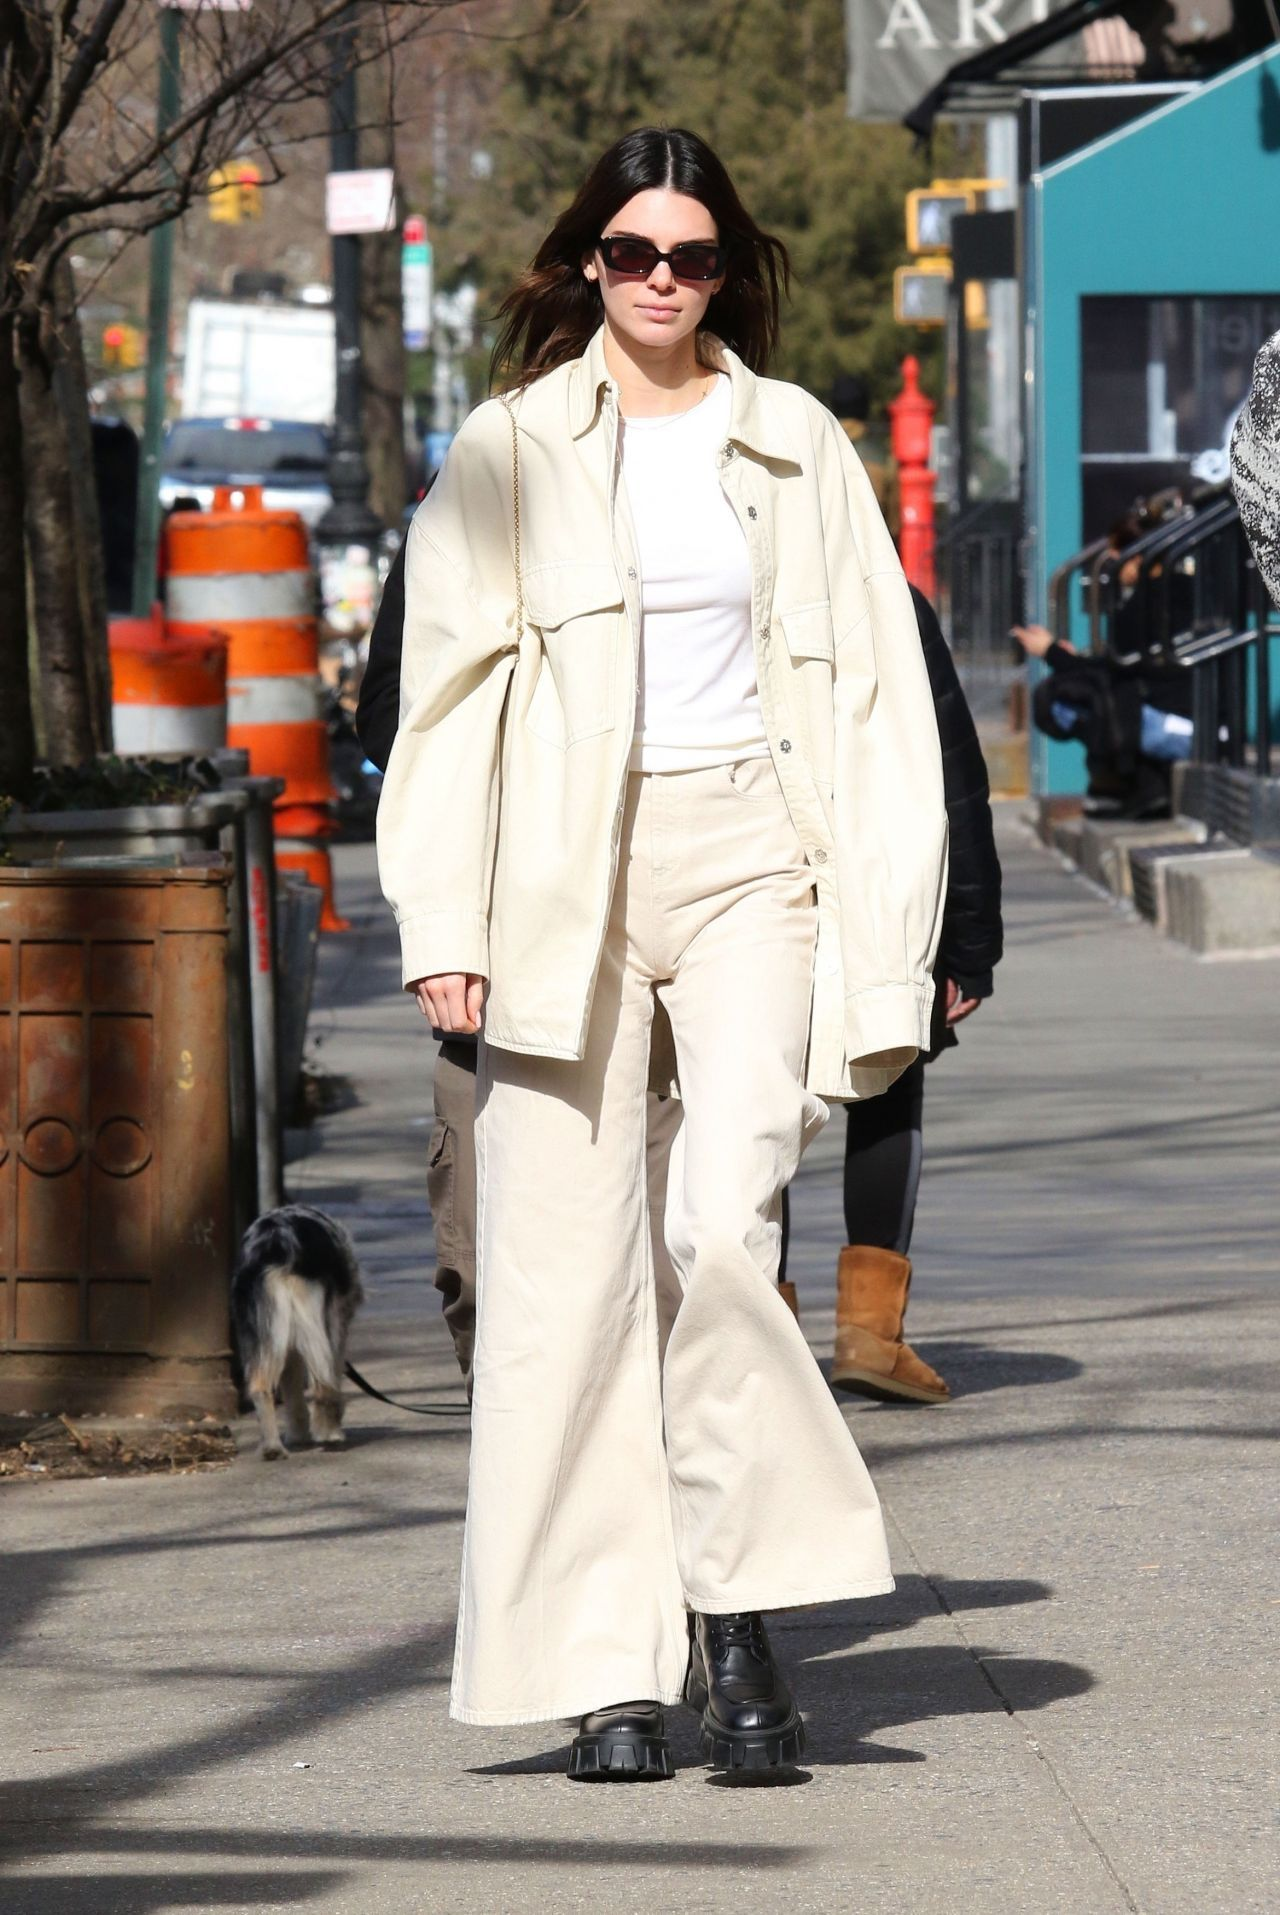 Kendall Jenner Out in New York 02/24/2020. #kendalljenner #kendalljennerstyle #celebrity #fashion #clothing #closet #celebrityfashion #celebritystyle  #celebritystreetstyle #streetfashion #streetstyle #jennersisters #hollywood #hollywoodlife